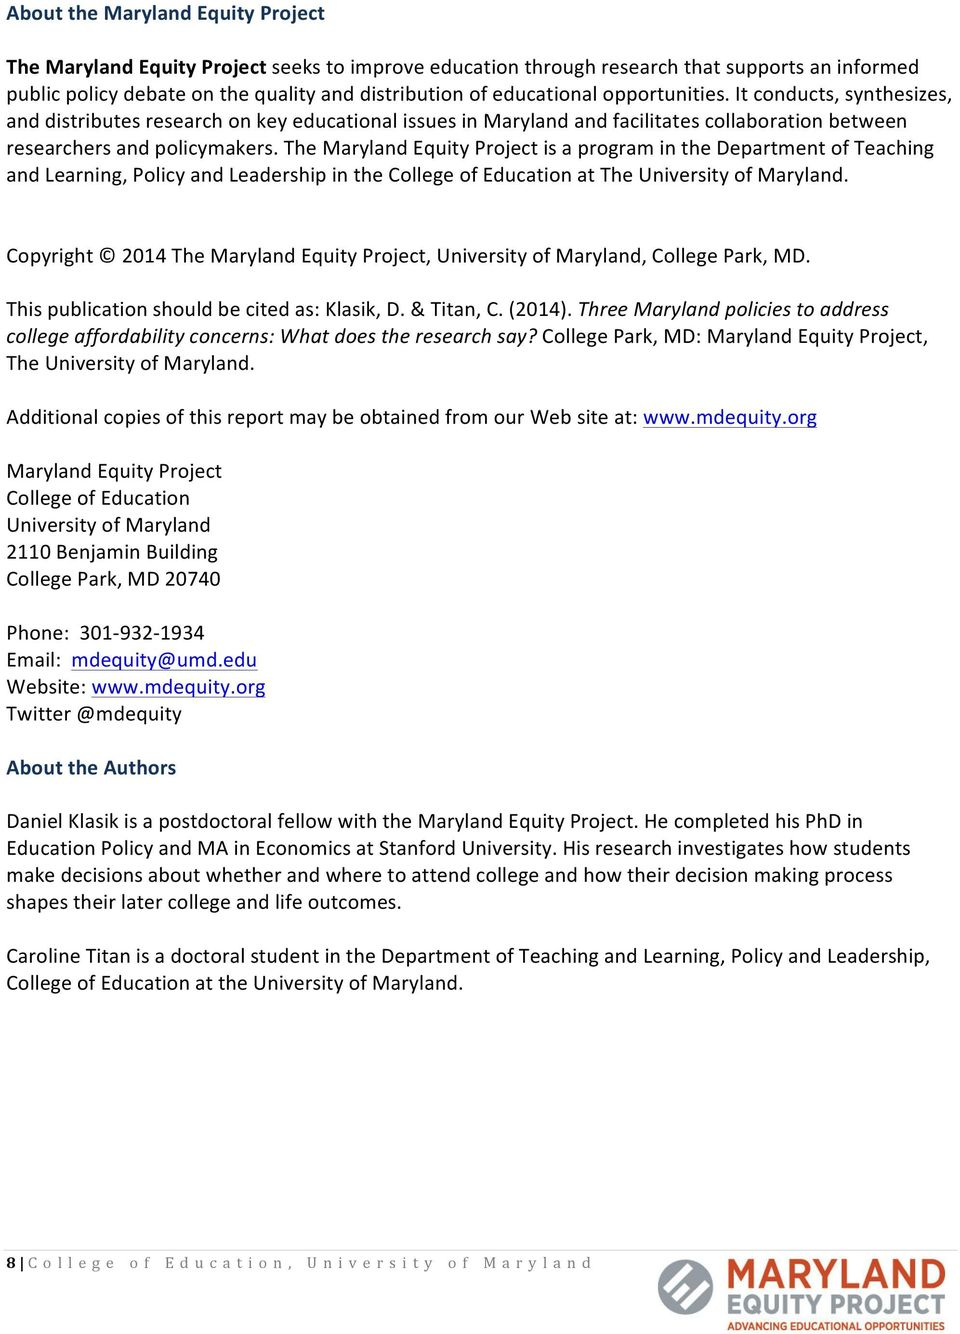 The Maryland Equity Project is a program in the Department of Teaching and Learning, Policy and Leadership in the College of Education at The University of Maryland.